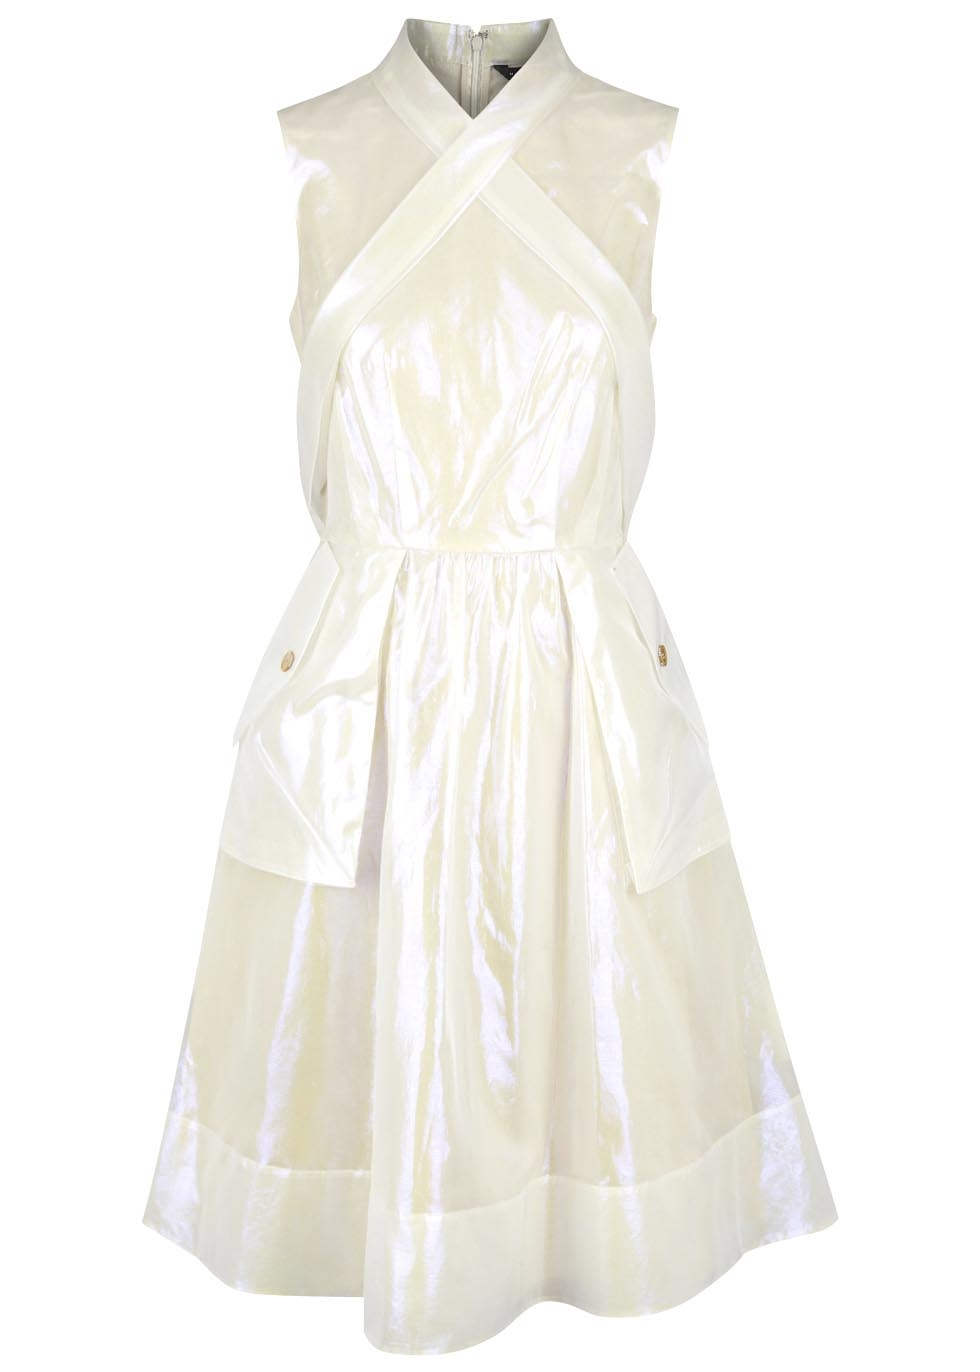 Pearlescent organza dress, £610, Marc by Marc Jacobs. www.harveynichols.com